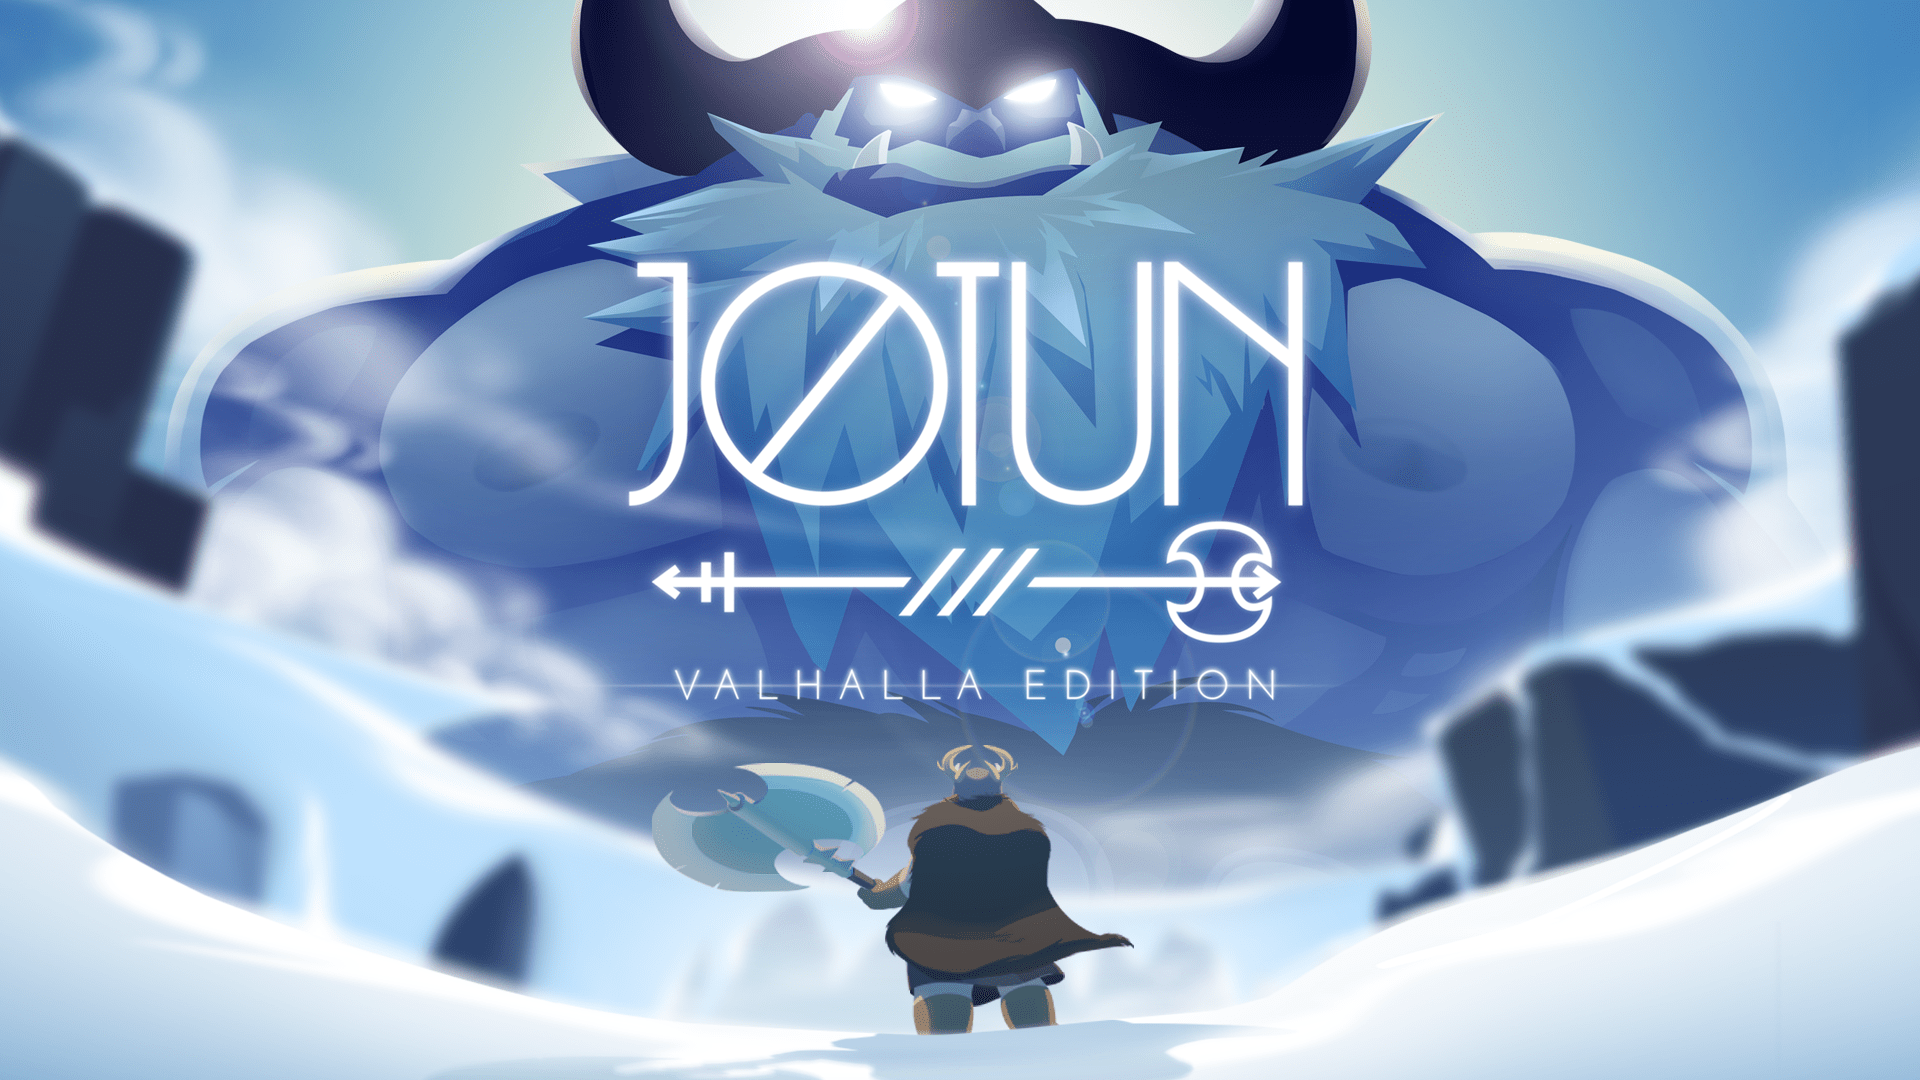 jotun_announcement_1920x1080